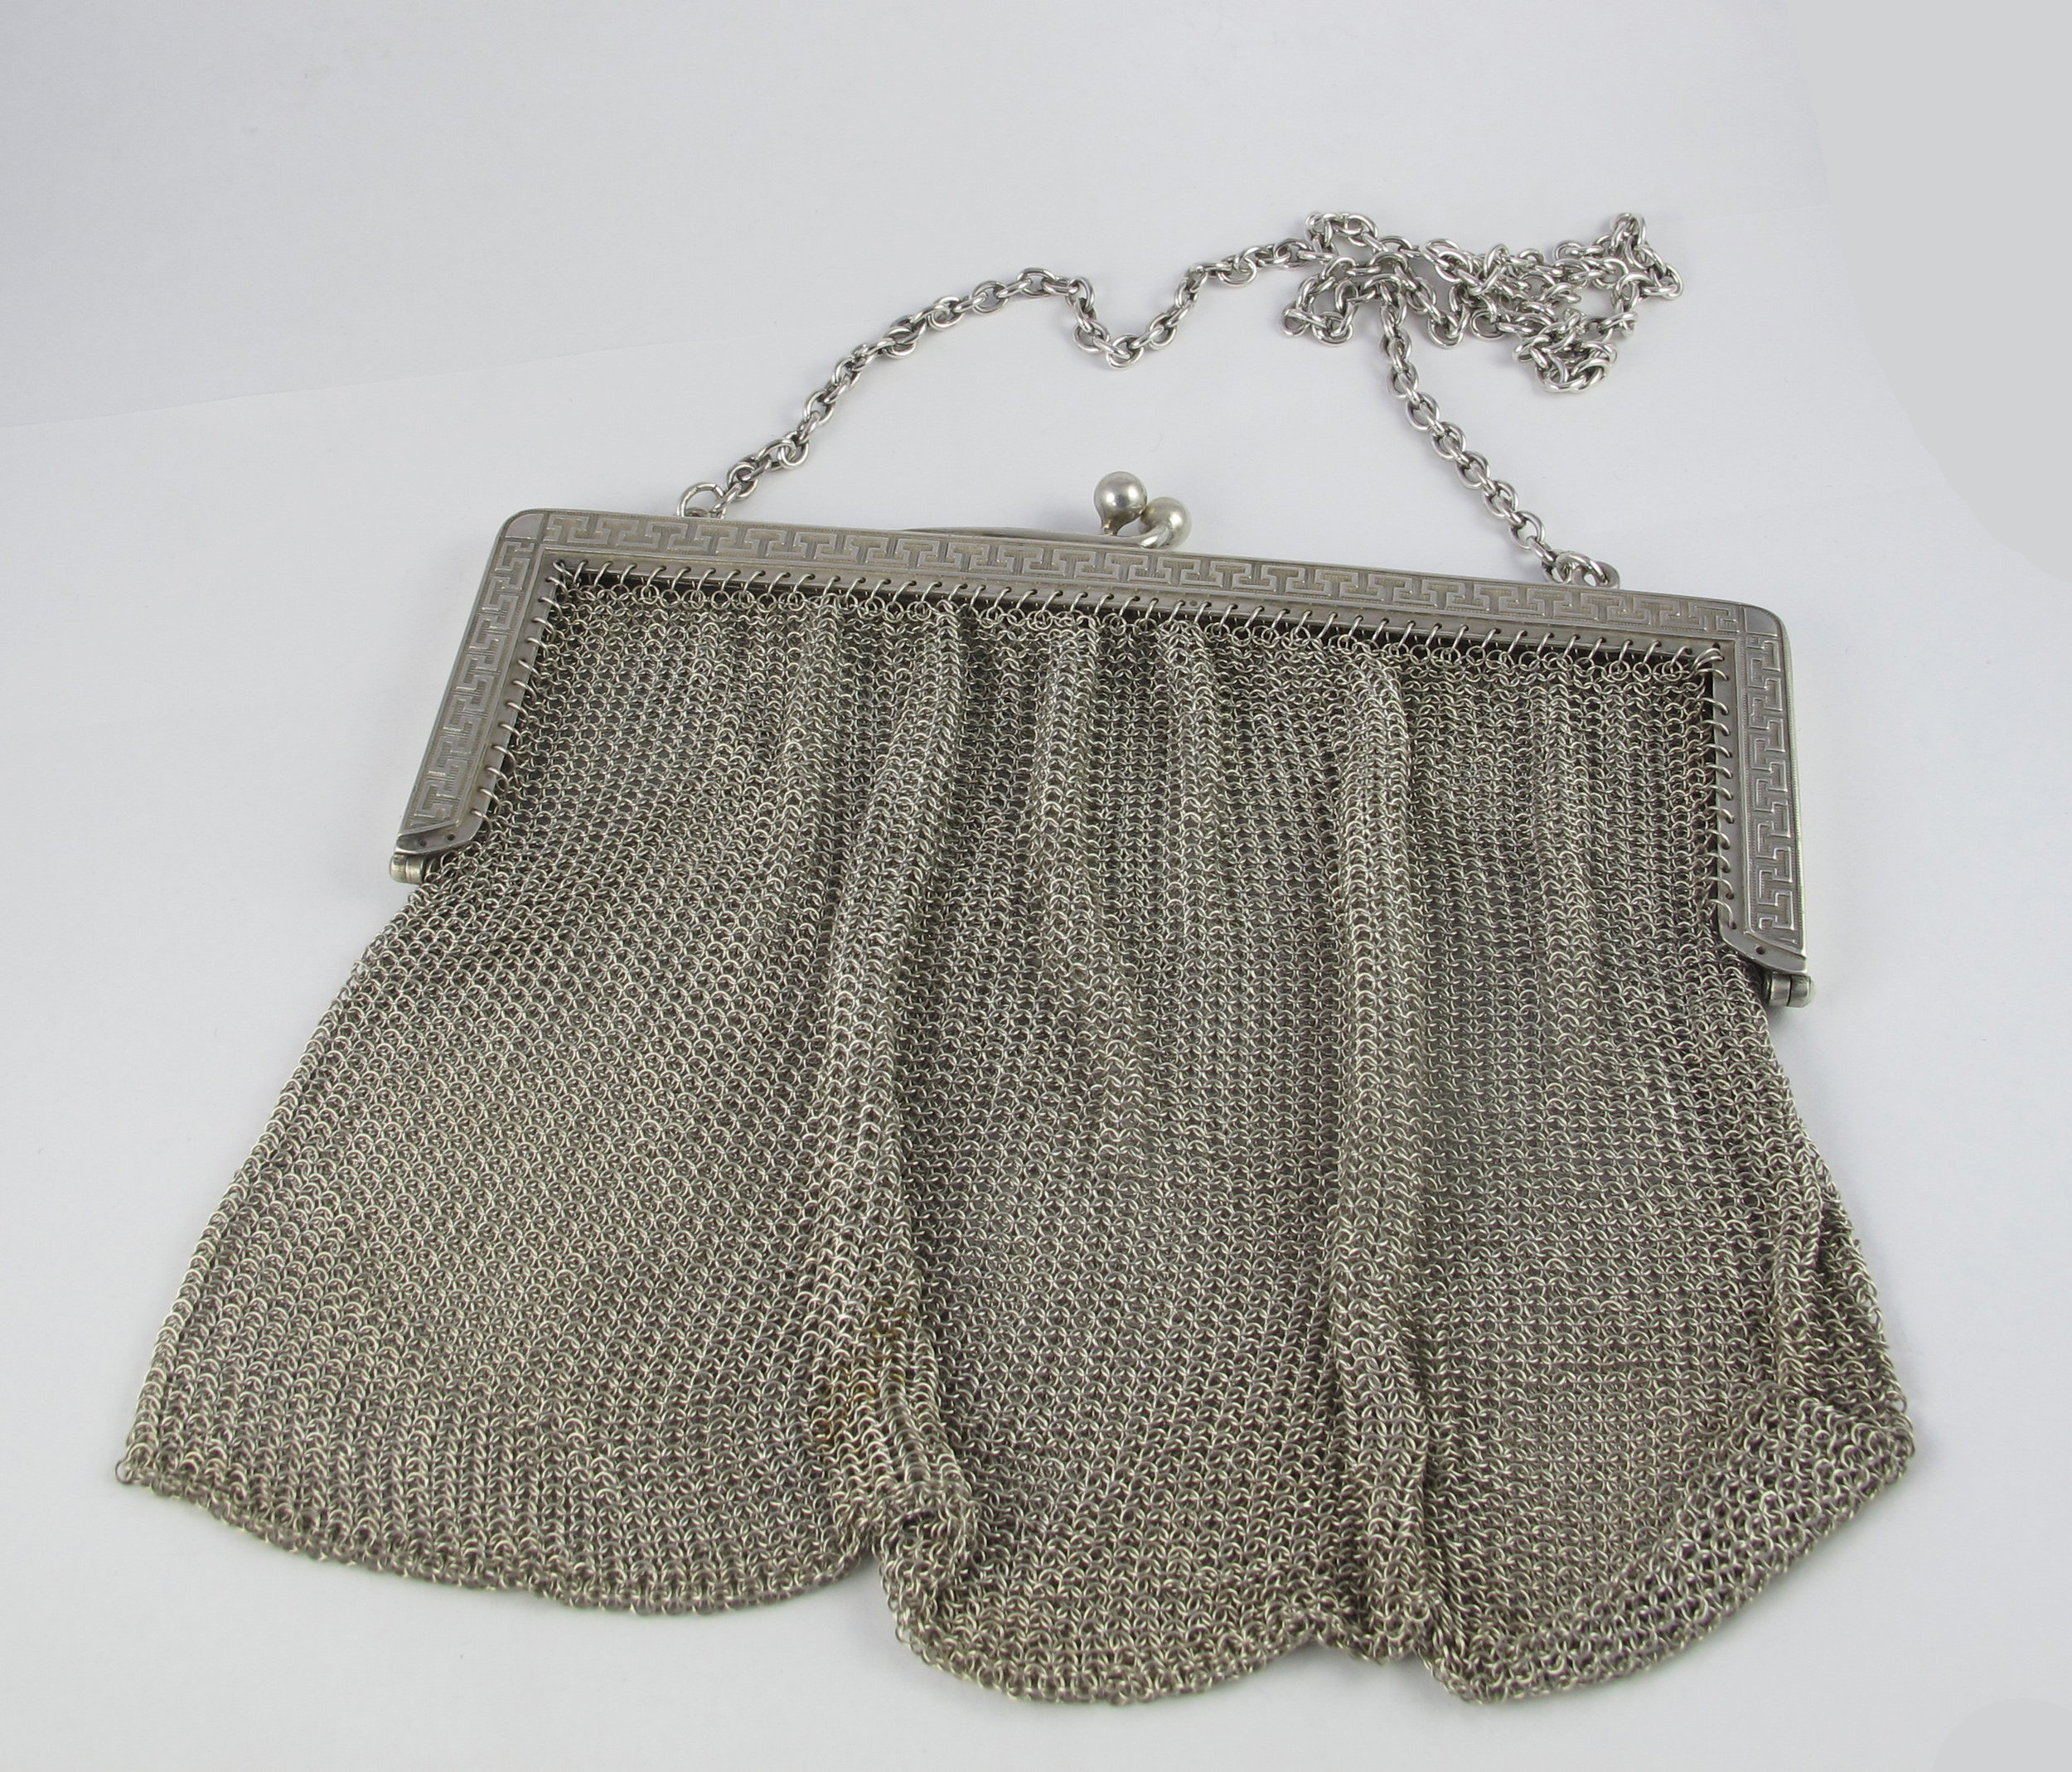 And here is that same bag after a full clean and restoration by our gold and silversmiths